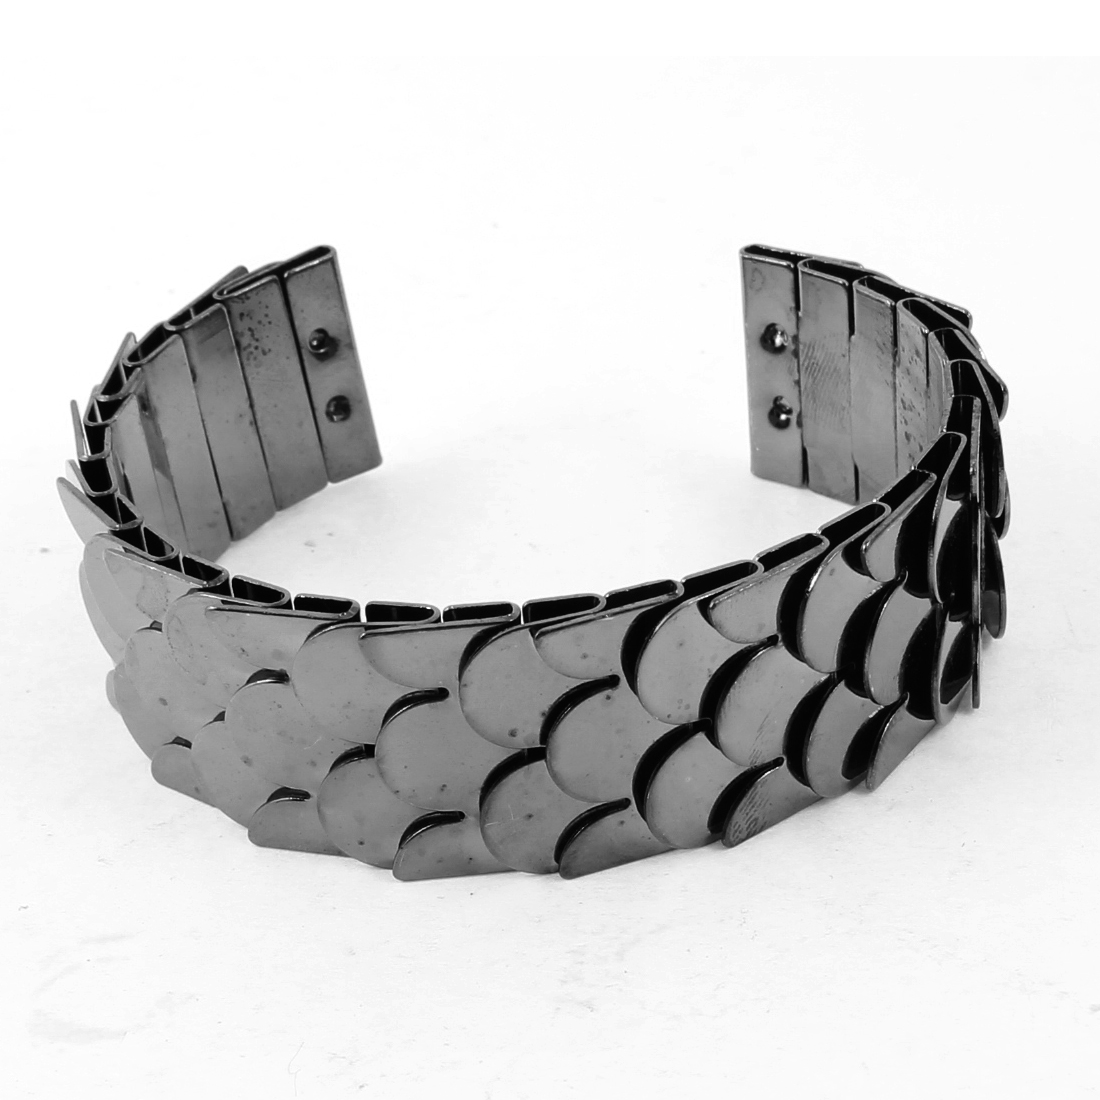 Black Metal Fish Scale Decor Wrist Bangle Bracelet for Women Girl